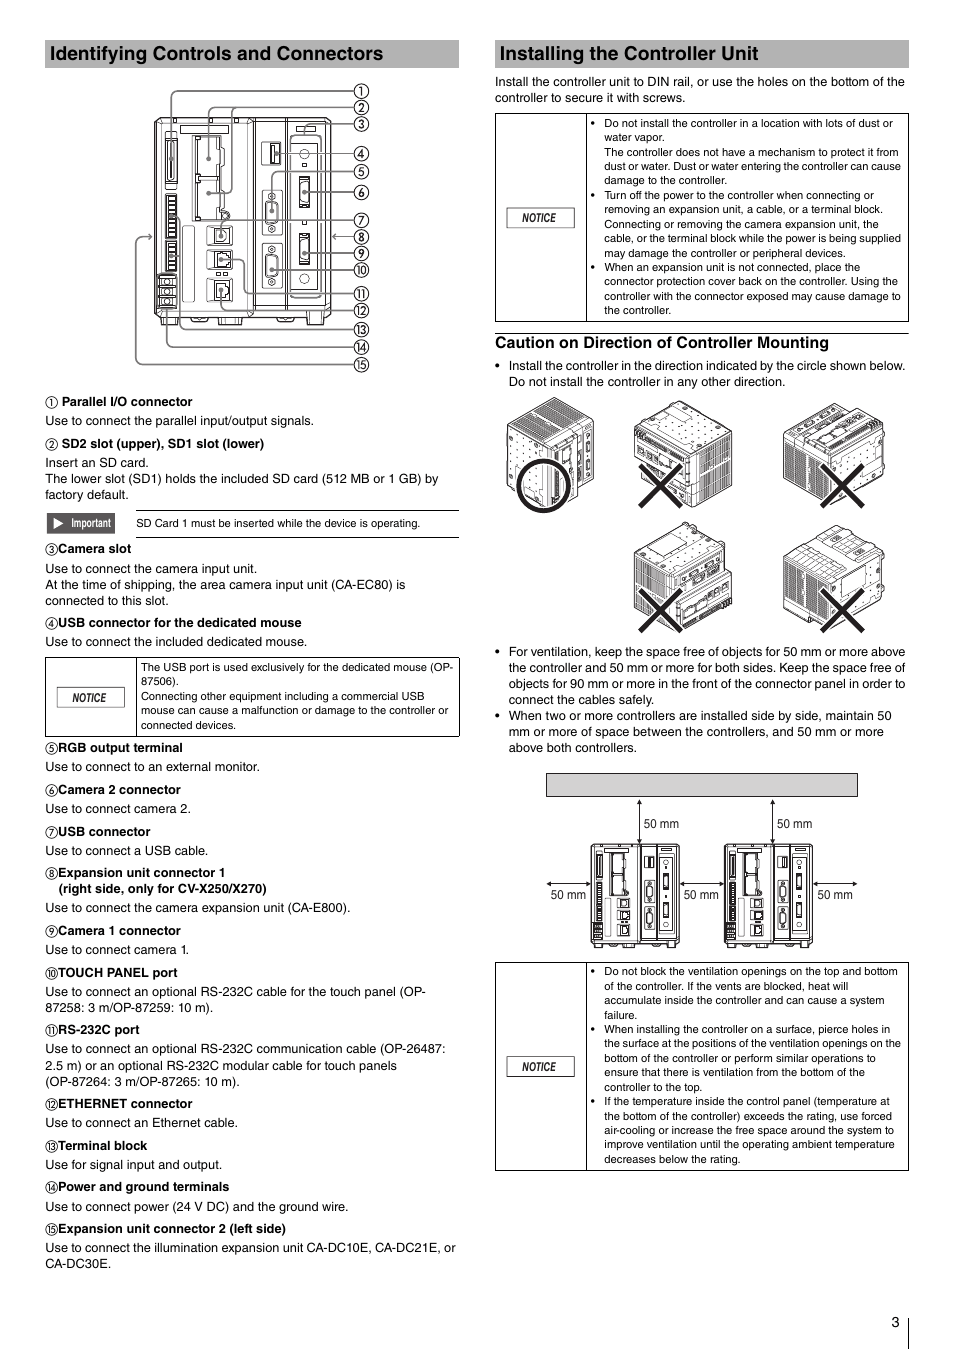 Identifying controls and connectors, Installing the